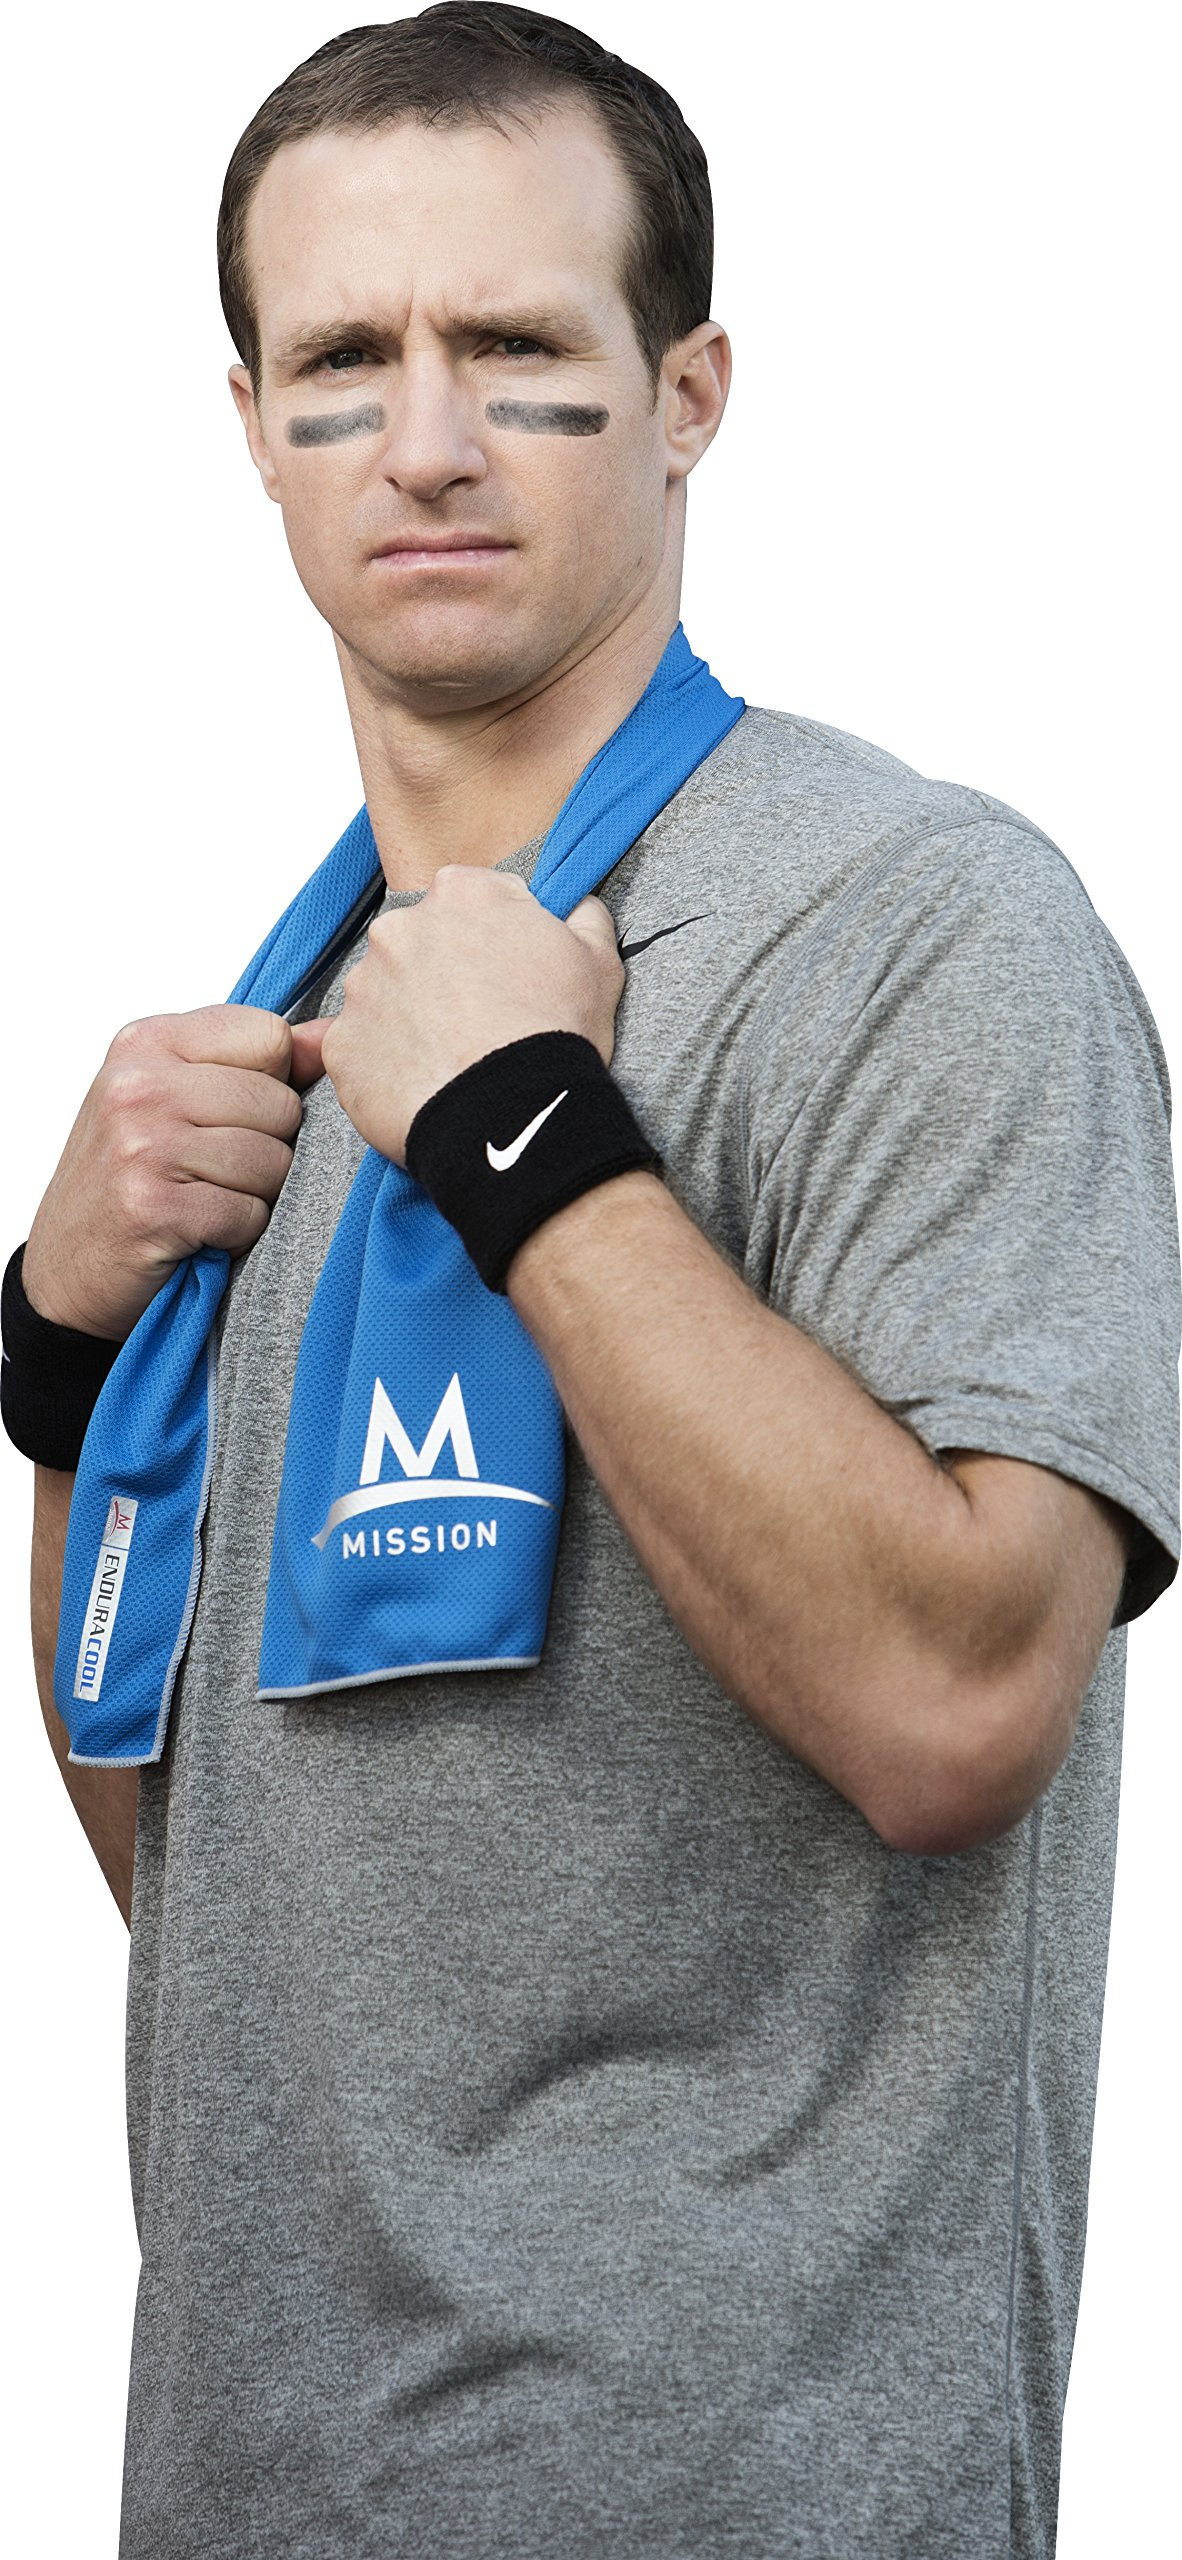 MISSION Original Cooling Towel by Mission